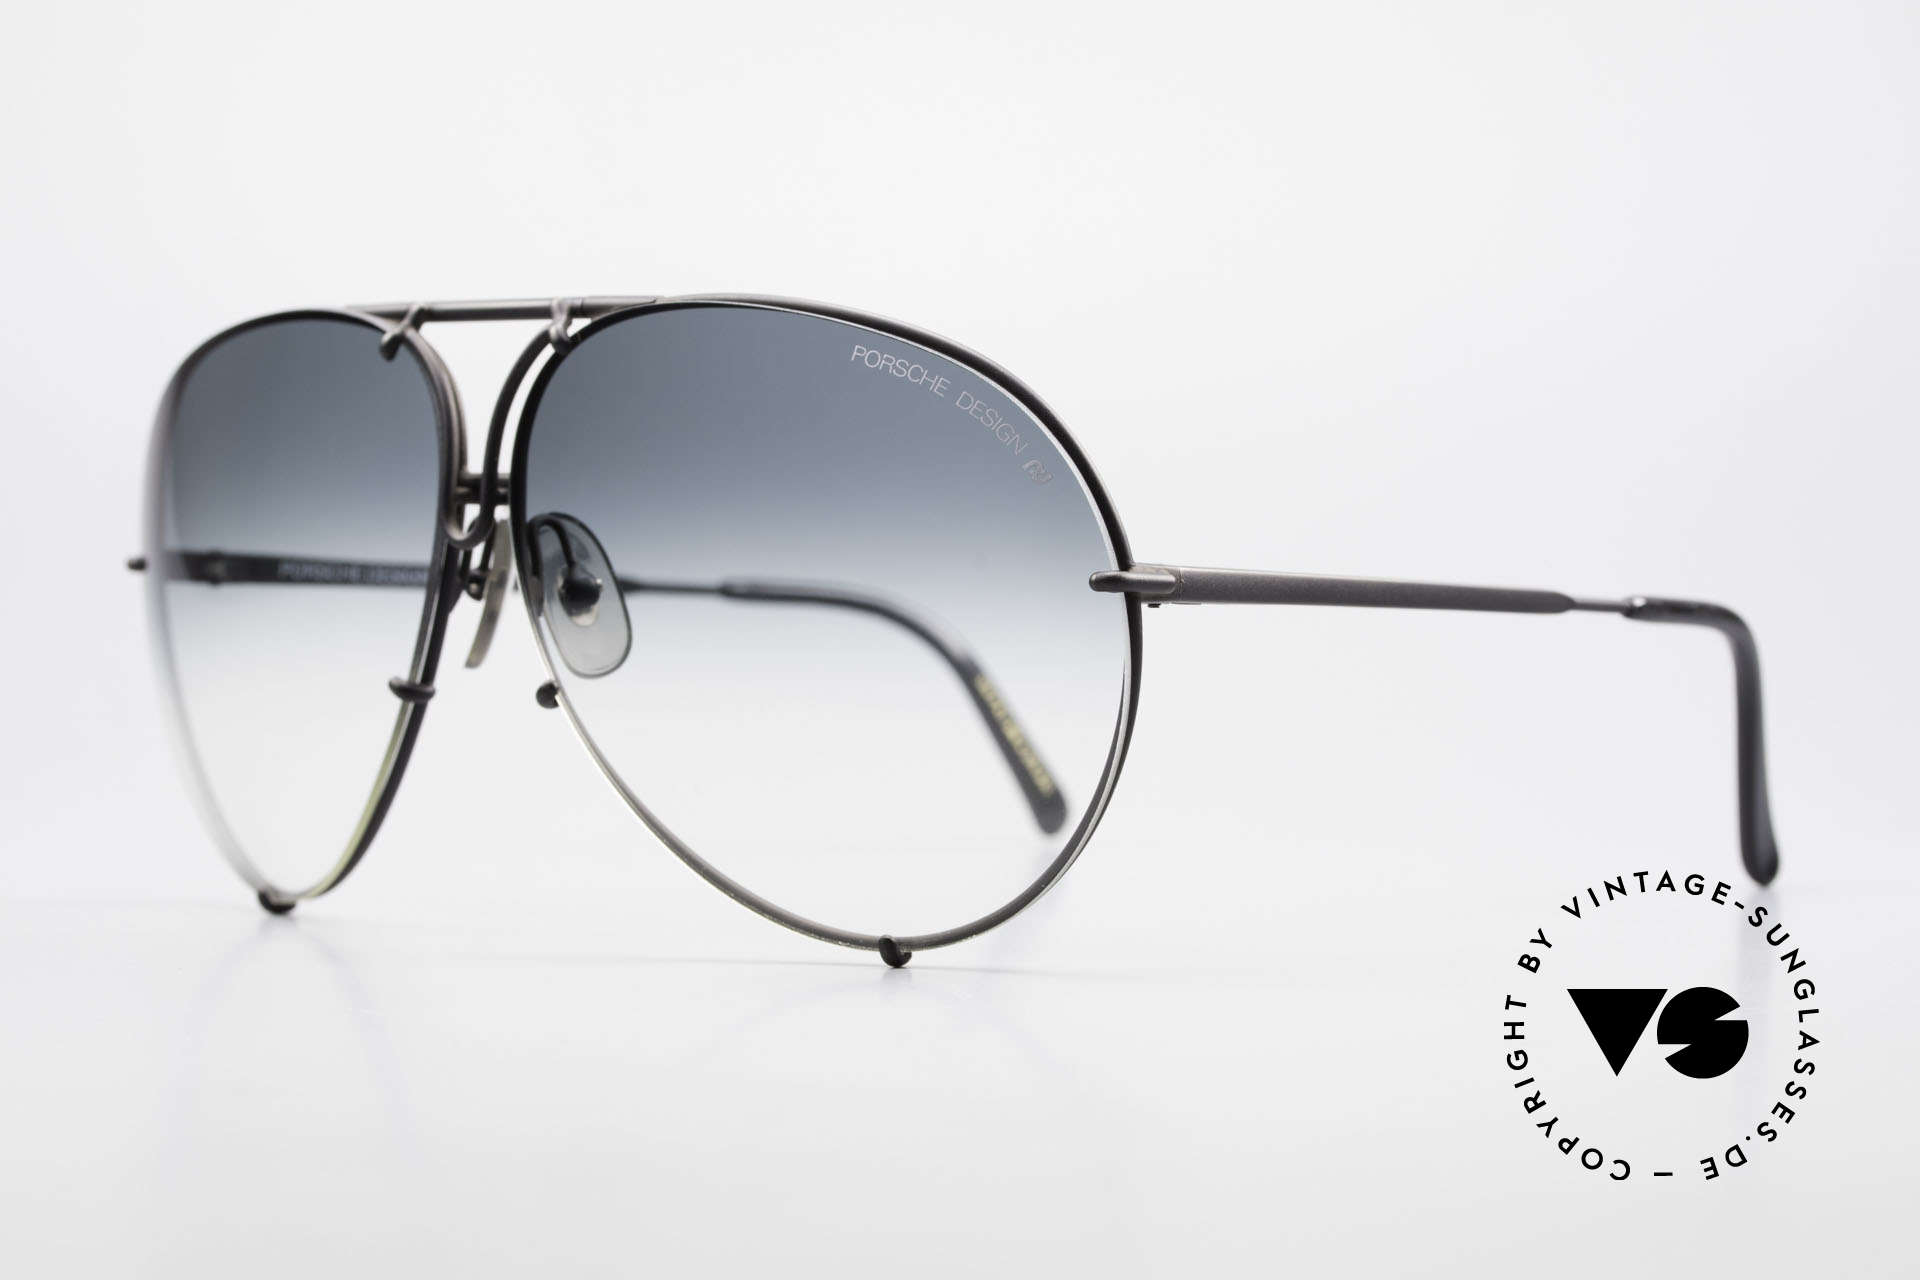 Porsche 5621 Rare 80's Aviator Sunglasses, interchangeable lenses: green-gradient & solid gray, Made for Men